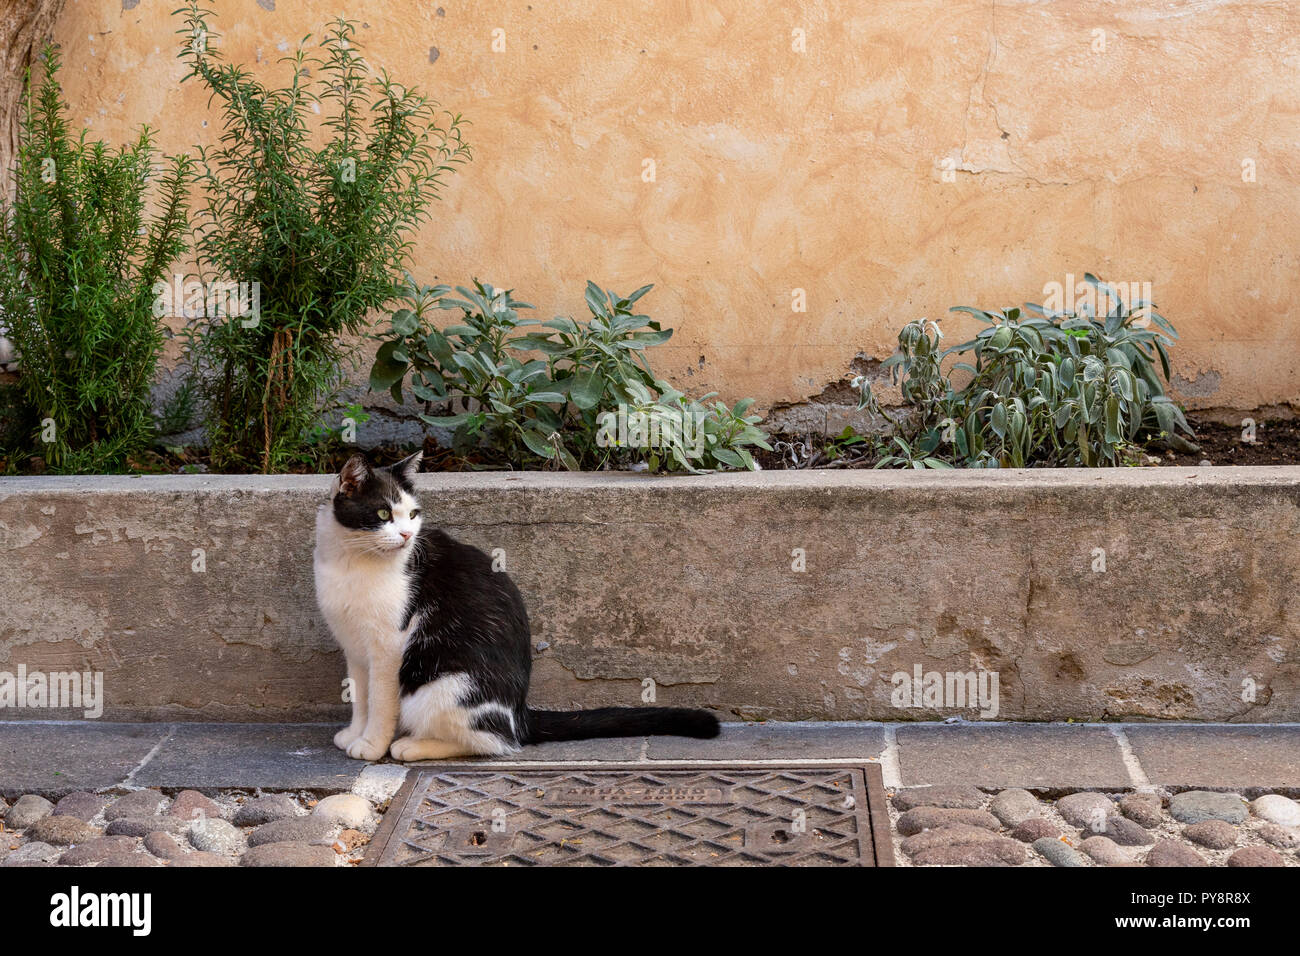 Cat on the pavement at Castellero Laguselo in northern Italy Stock Photo